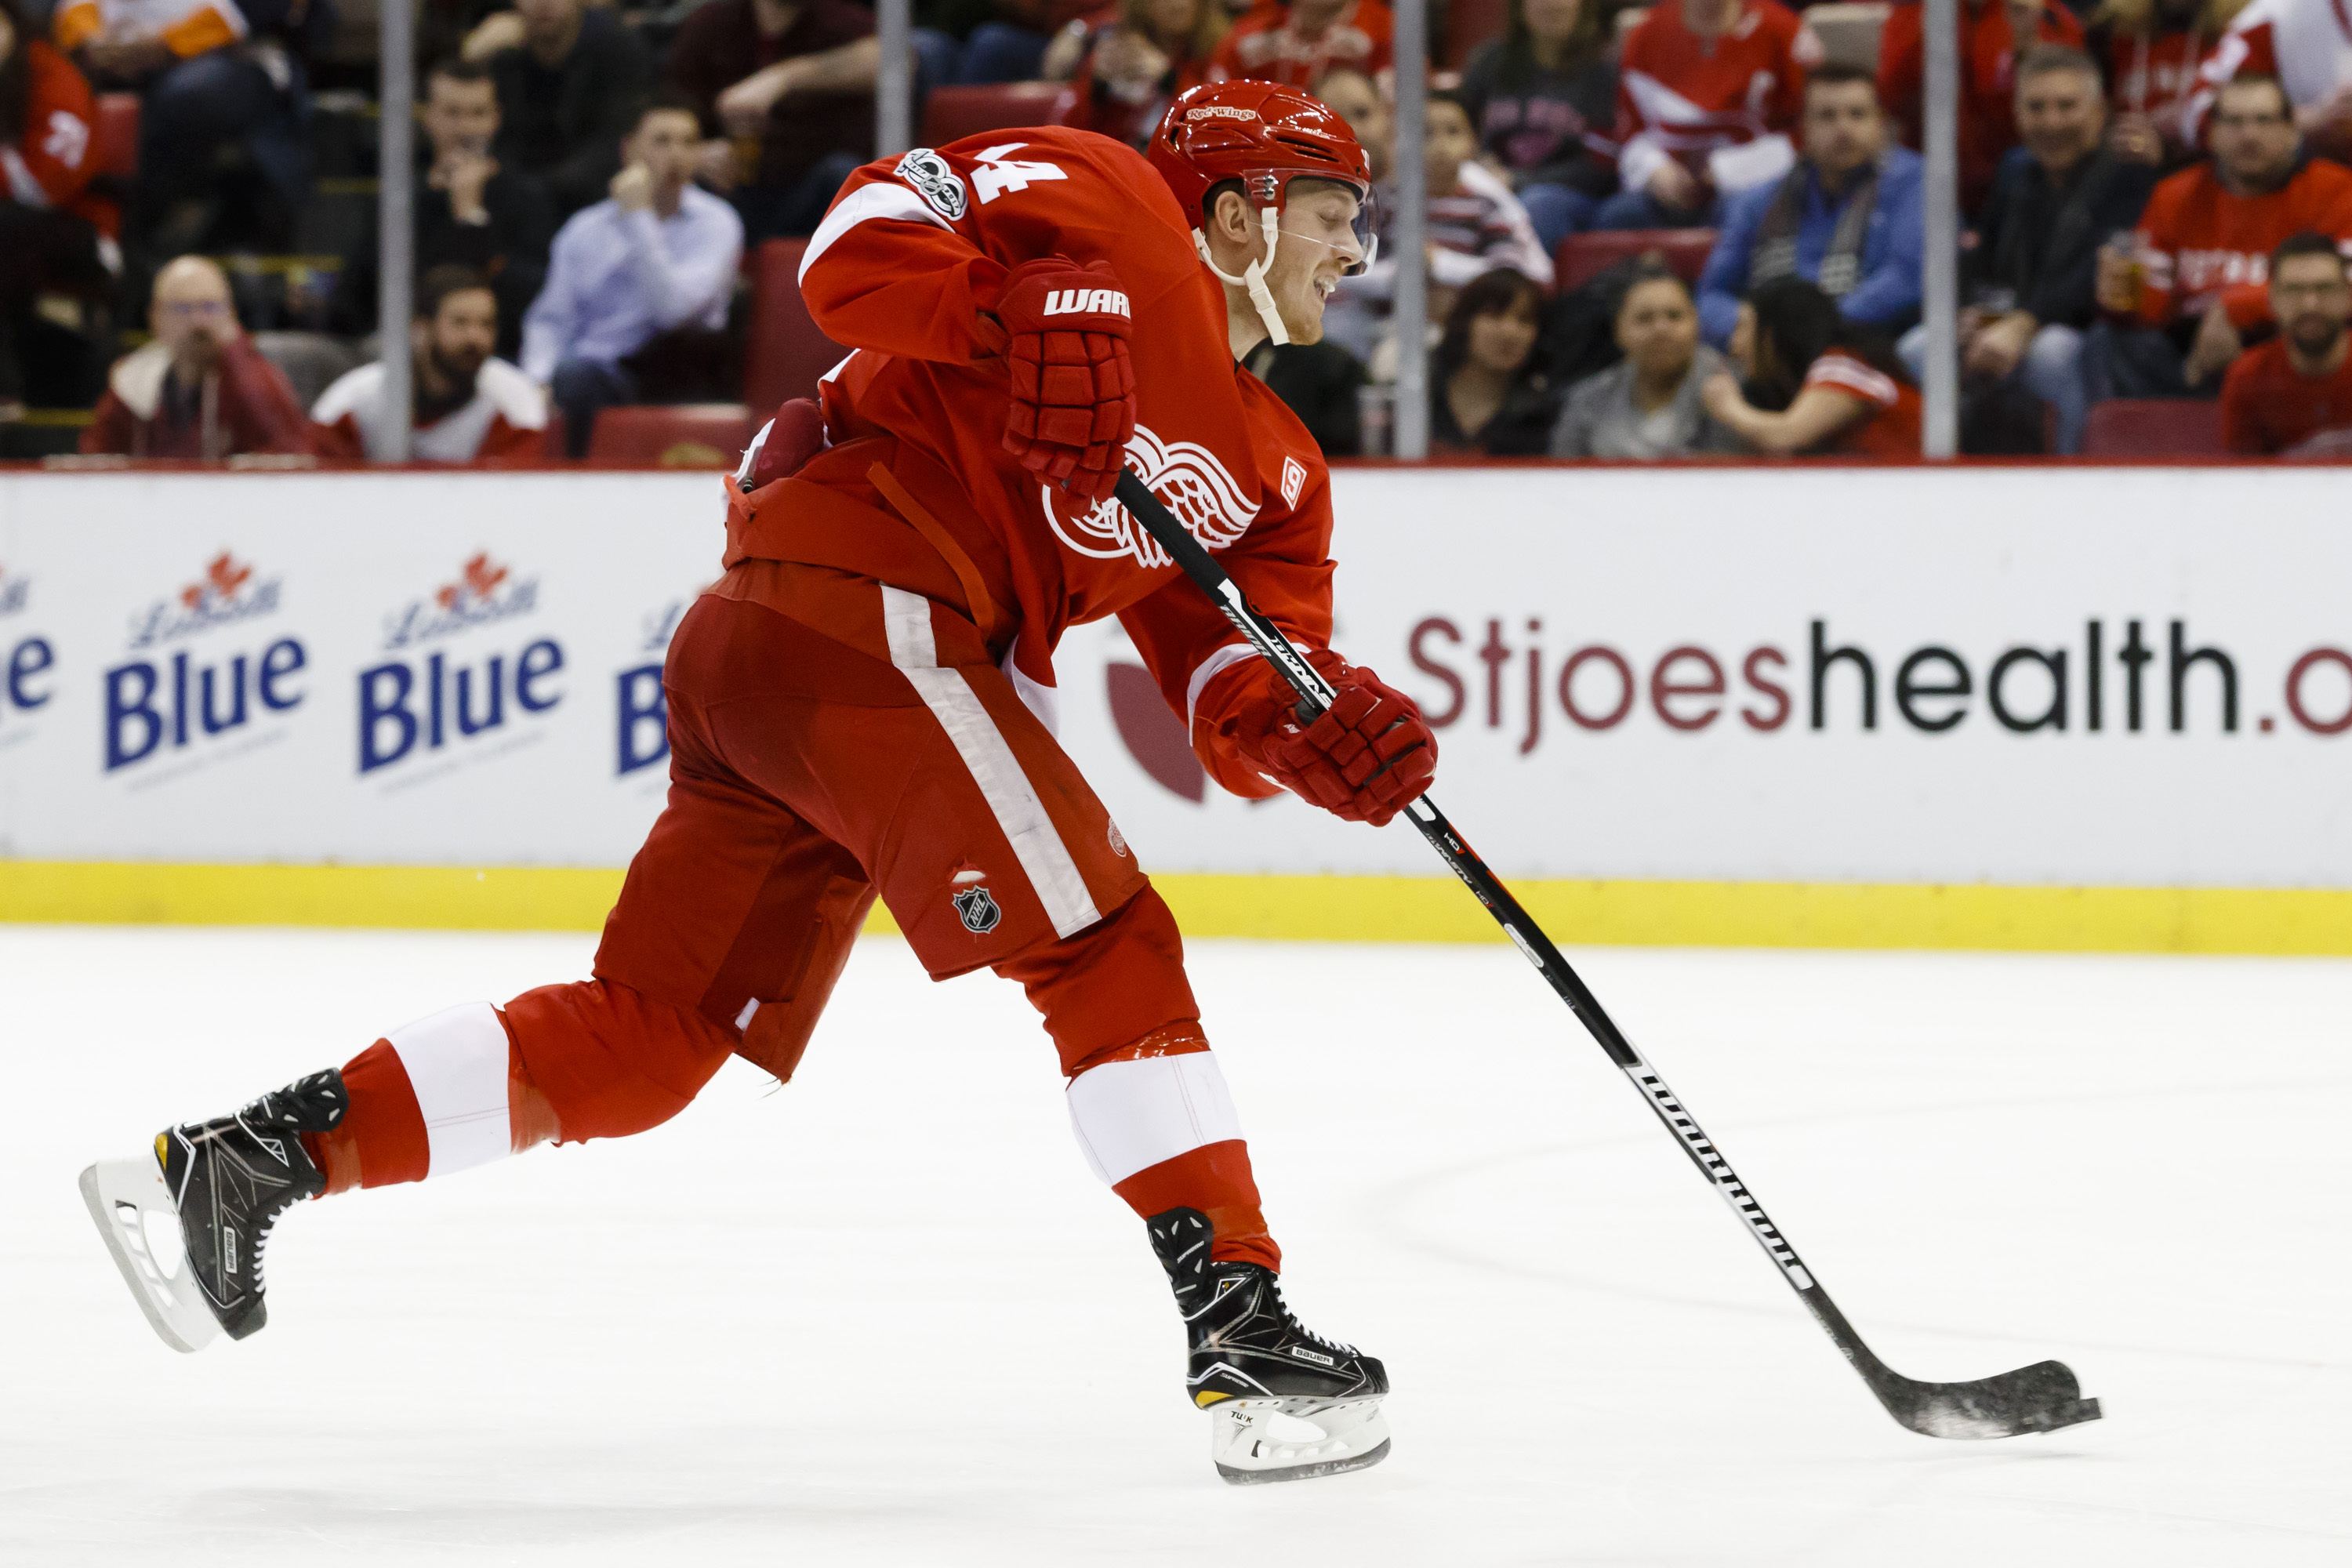 How many games should Gustav Nyquist be suspended for high stick?